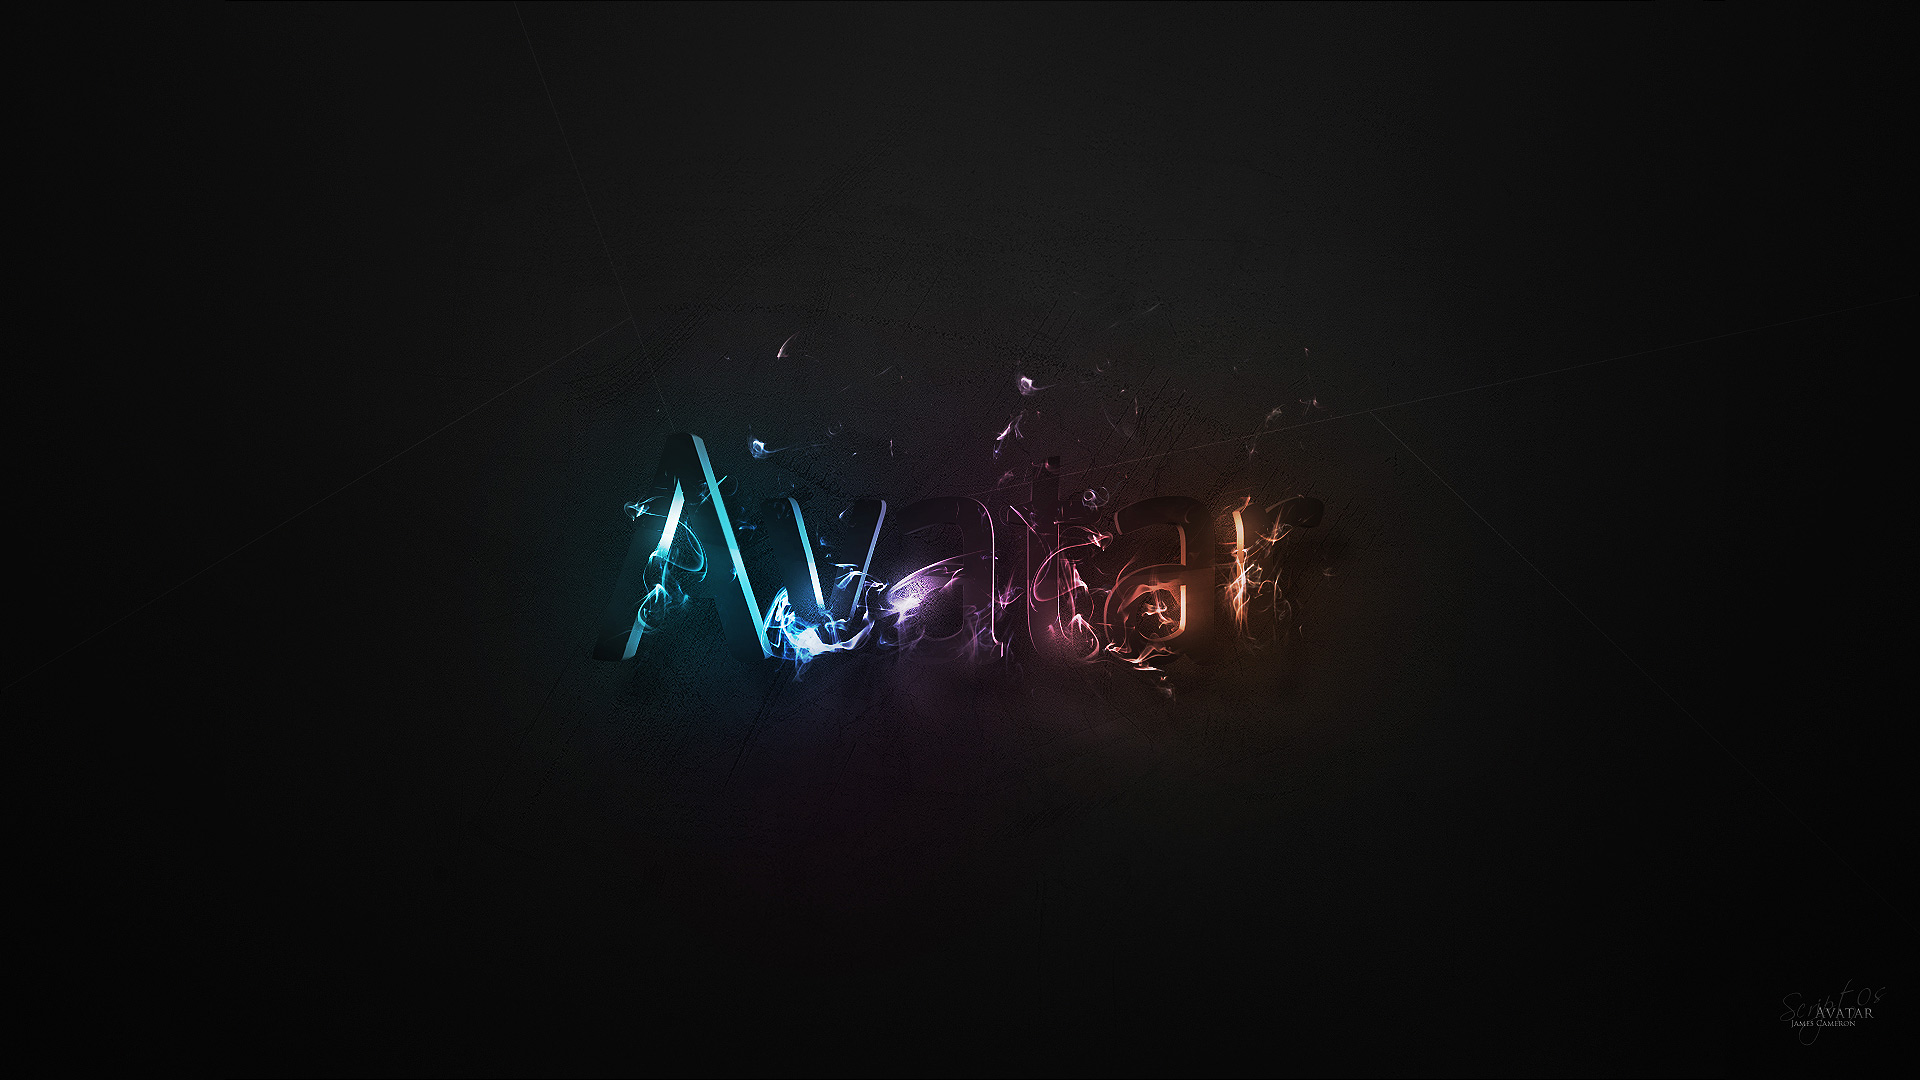 Hd Wallpapers Fa Word: 1920x1080 HD Neon Wallpapers